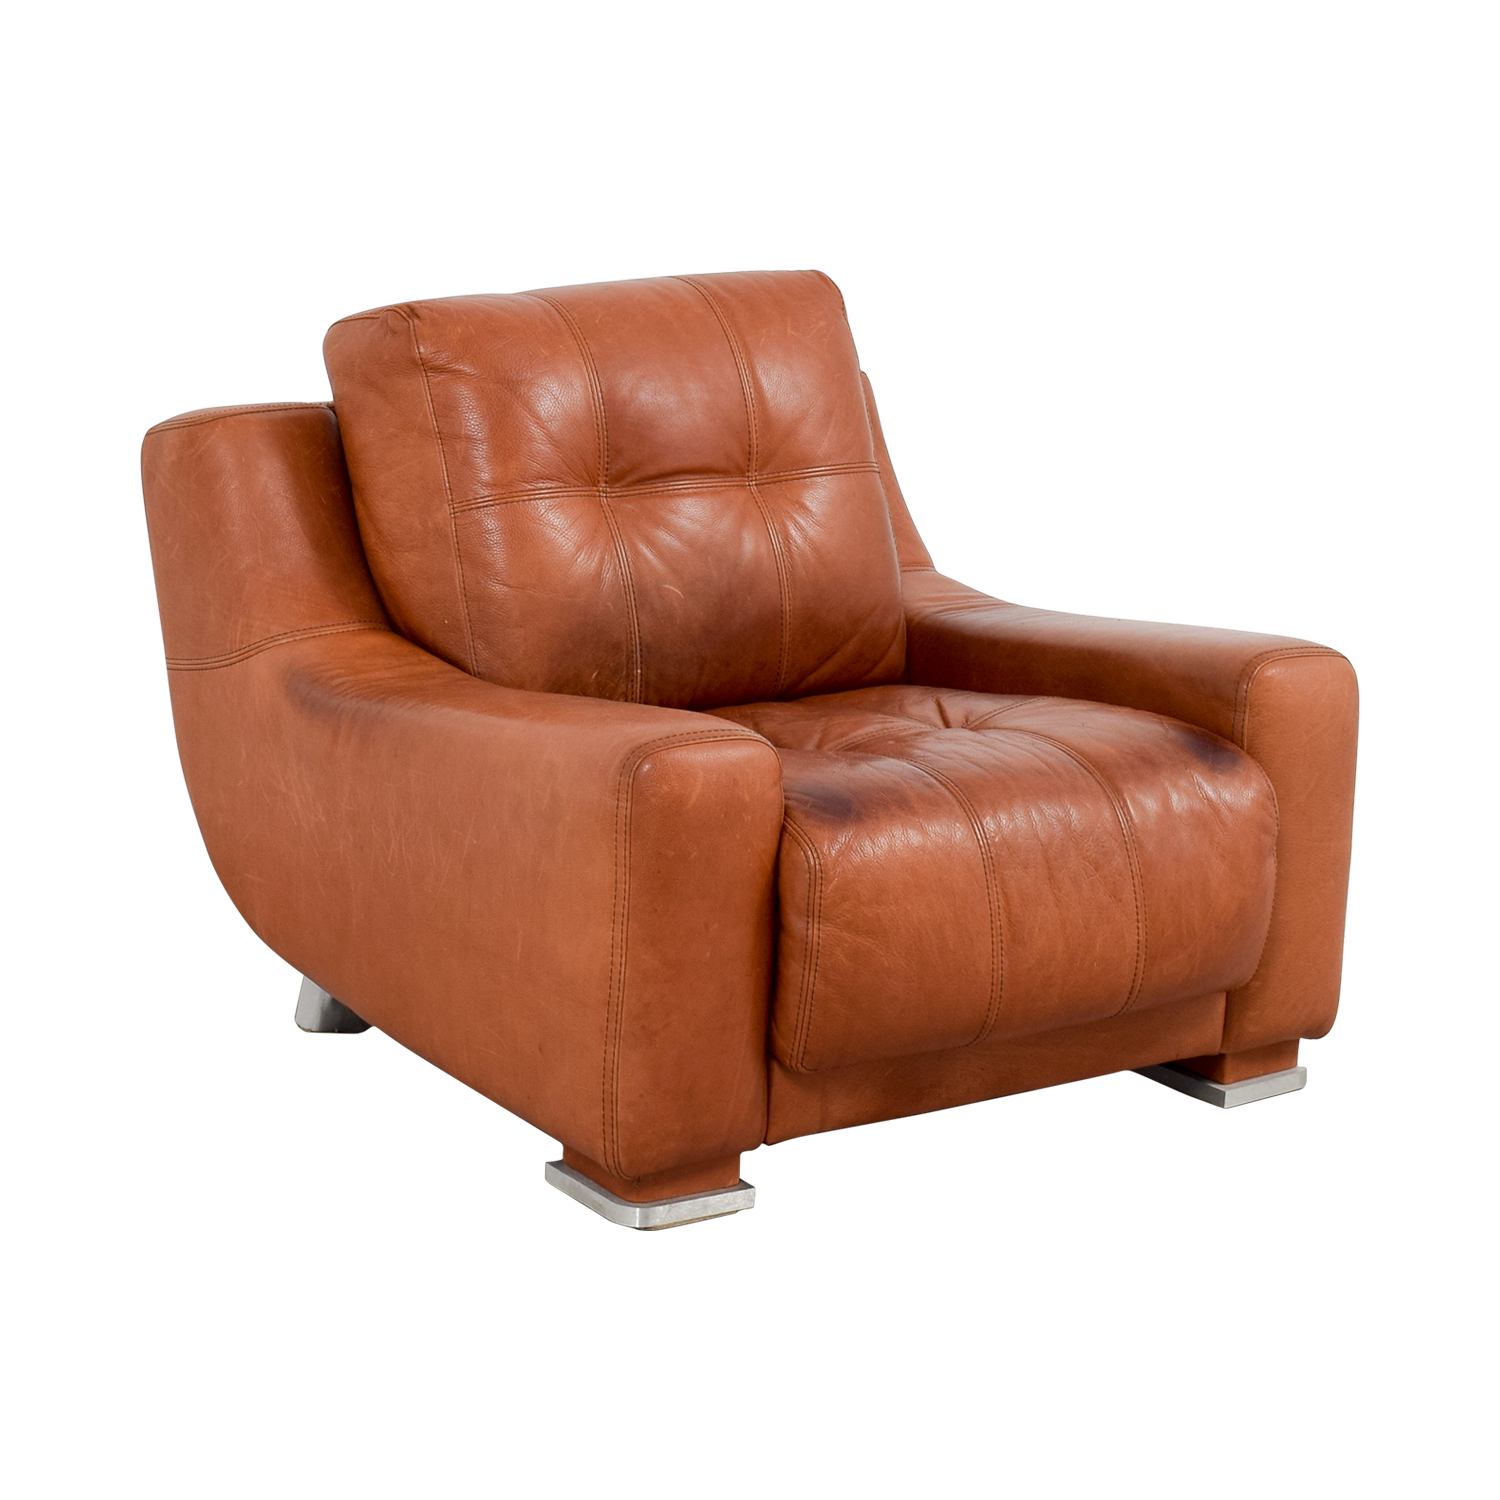 ... Contempo Contempo Leather Accent Chair Nj ...